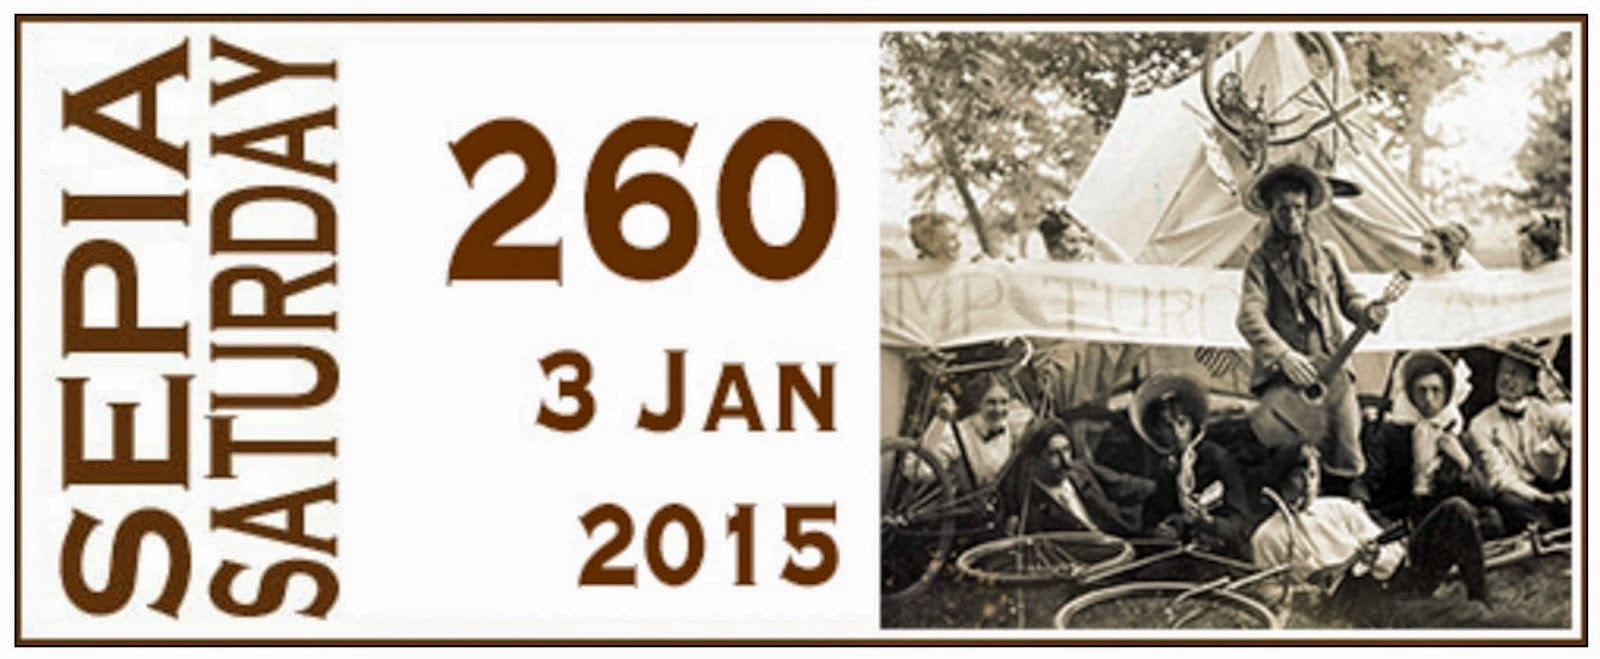 http://sepiasaturday.blogspot.com/2014/12/sepia-saturday-260-3-january-2015.html